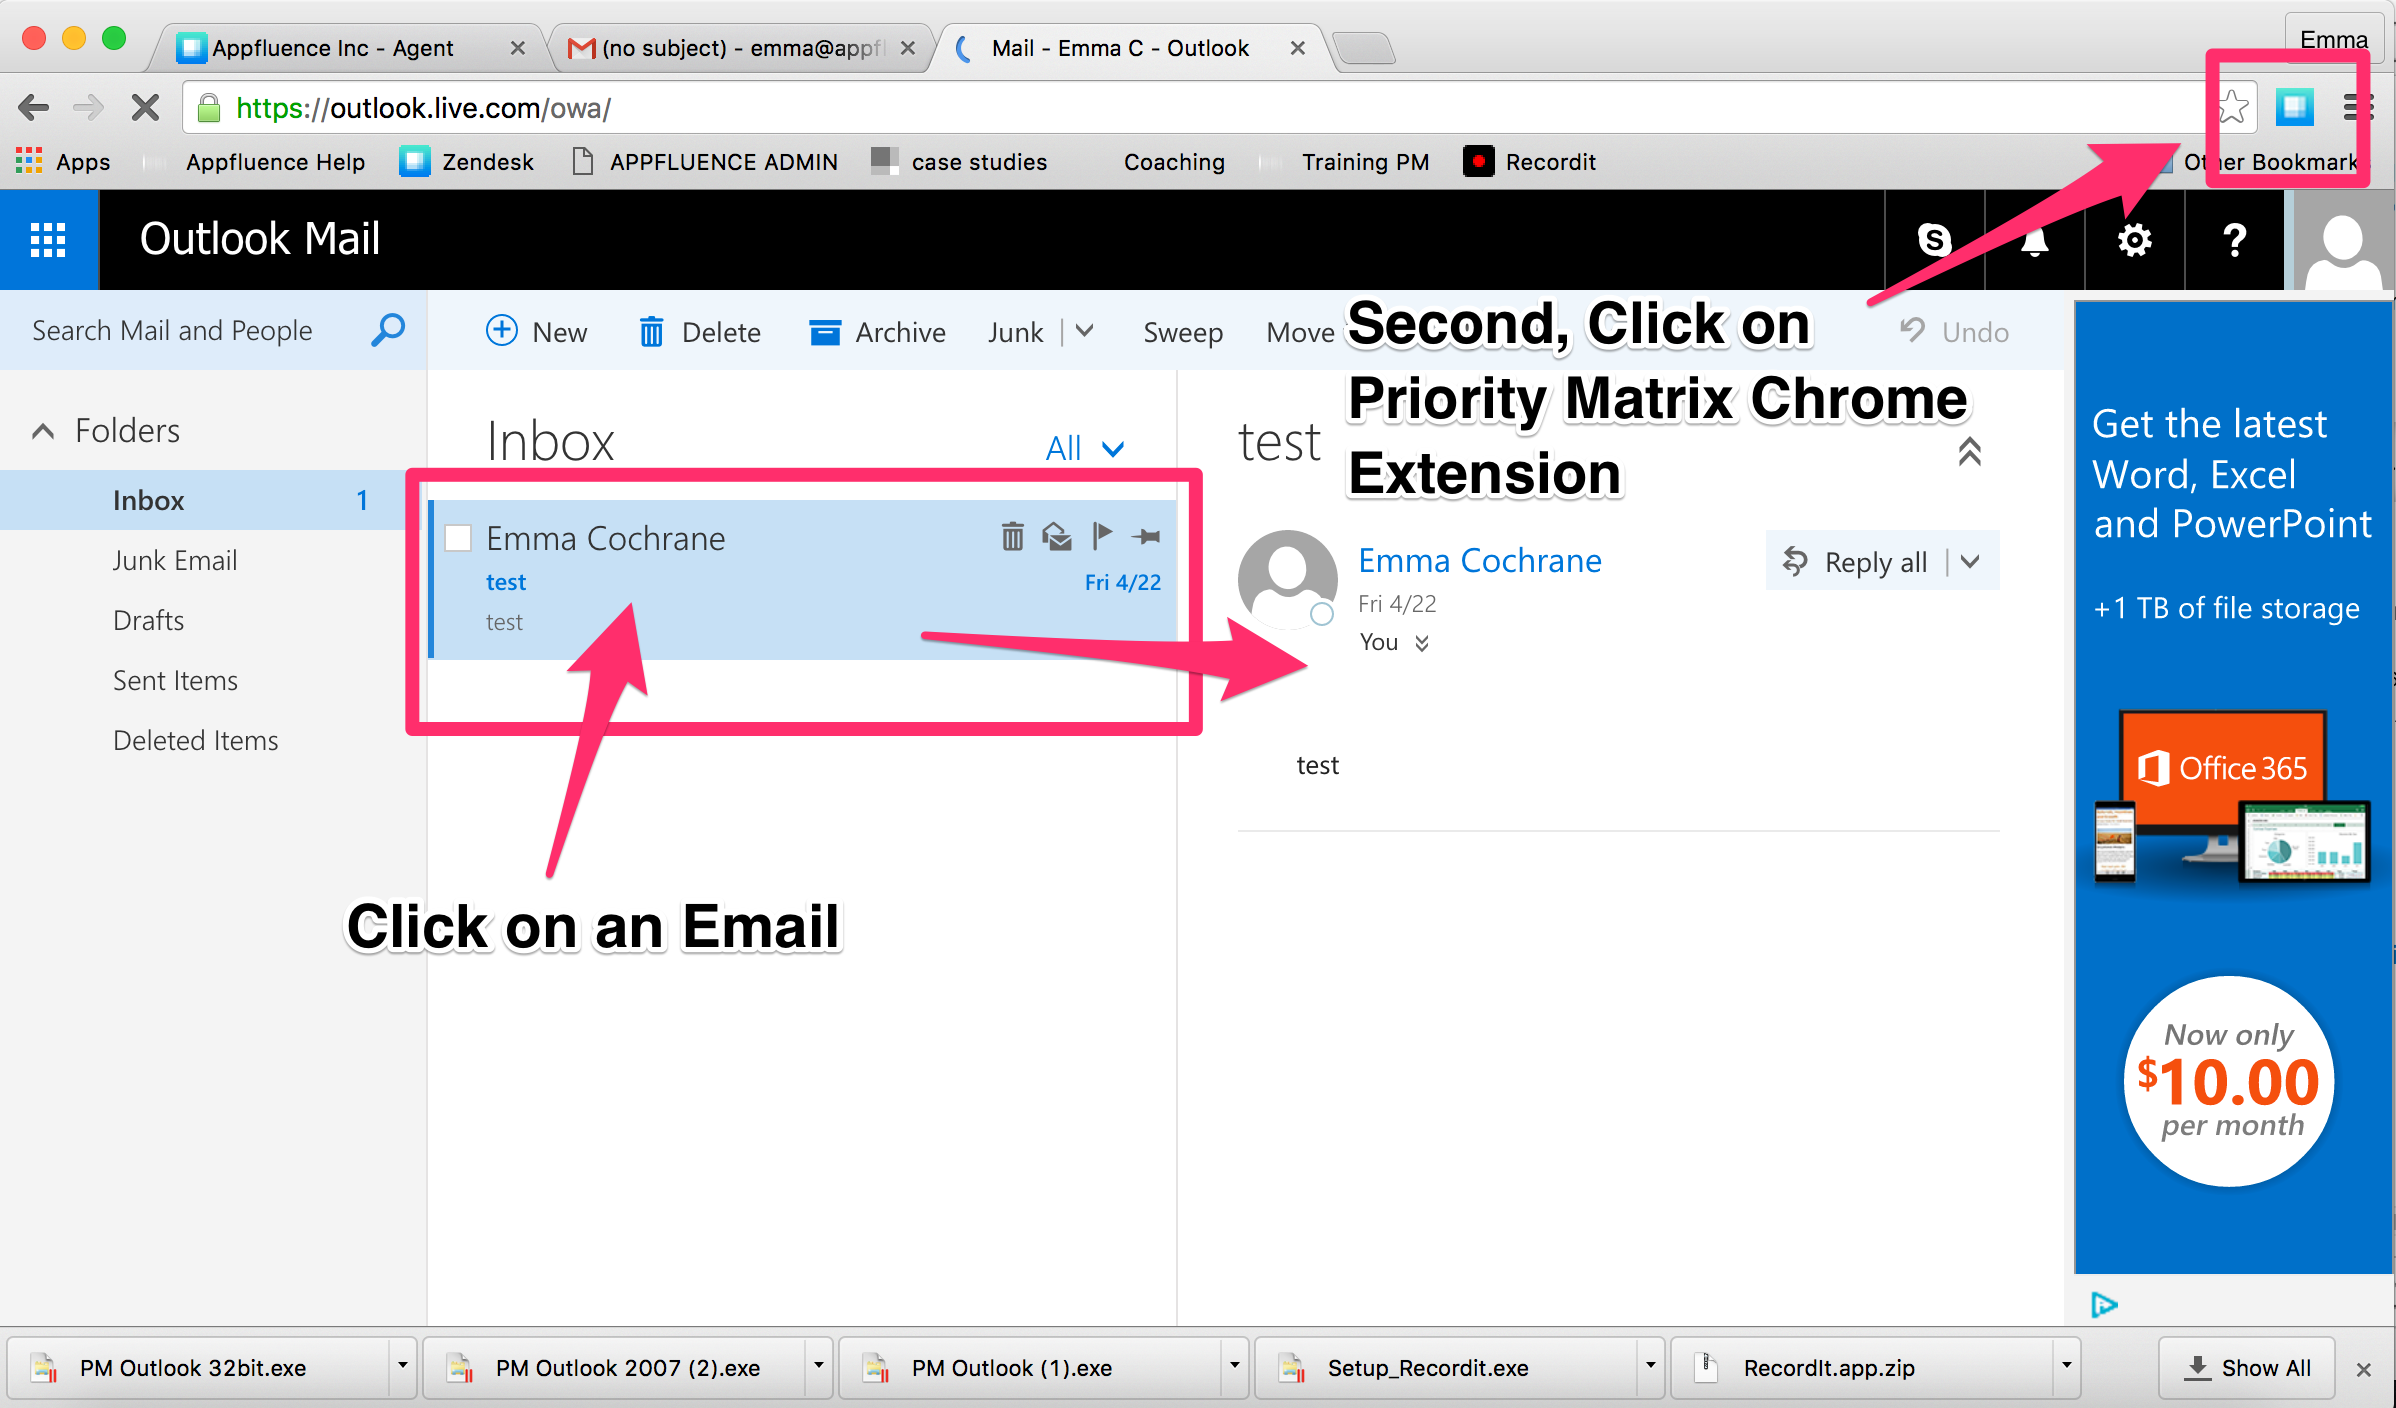 How Can I Use The Google Chrome Extension Like The Outlook Plugin